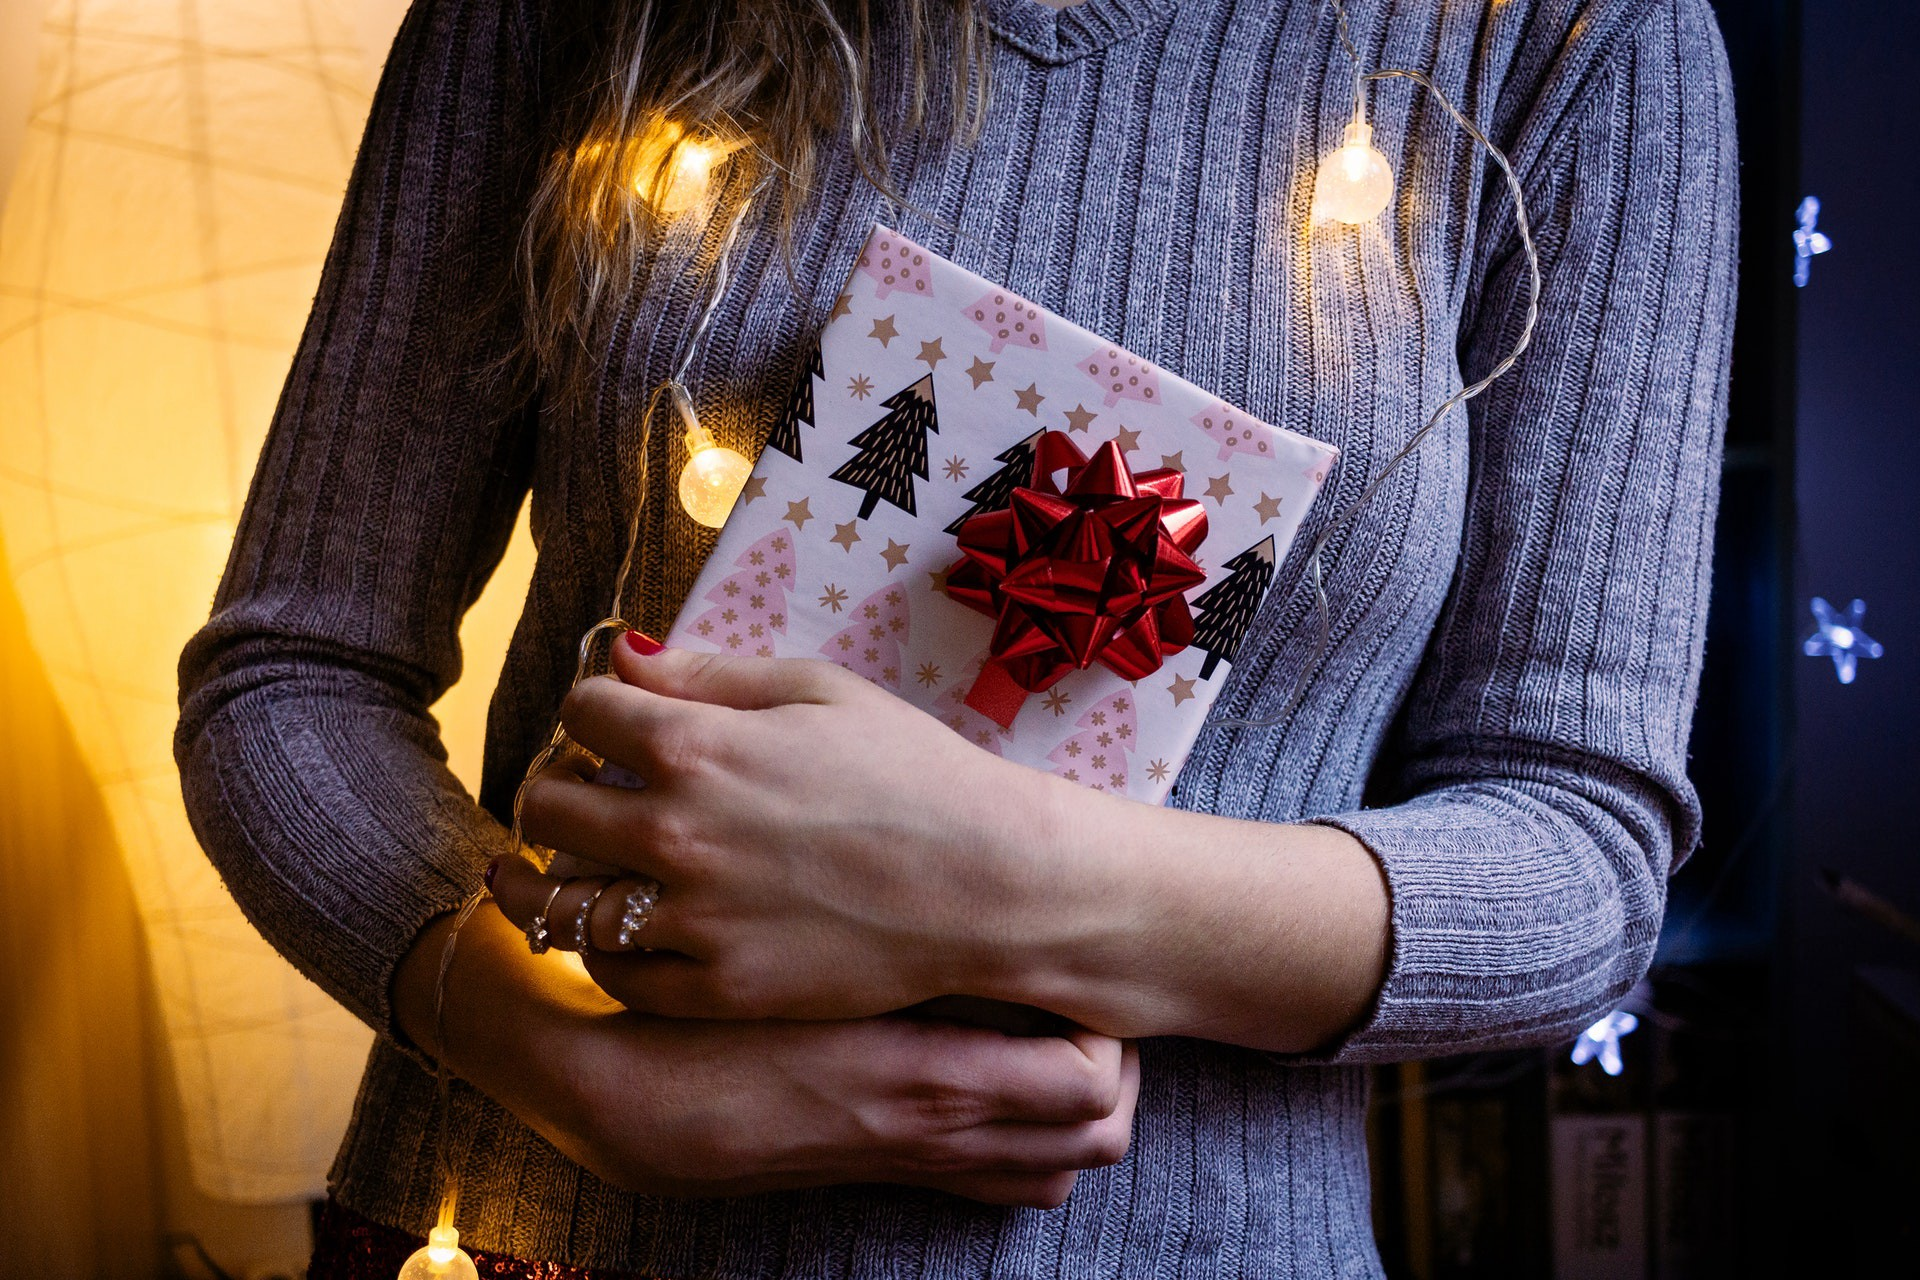 Christmas Gifts For Nieces Nephews And Grandkids Choosing Impactful Gifts By Pony Gang Equestrian Center Medium